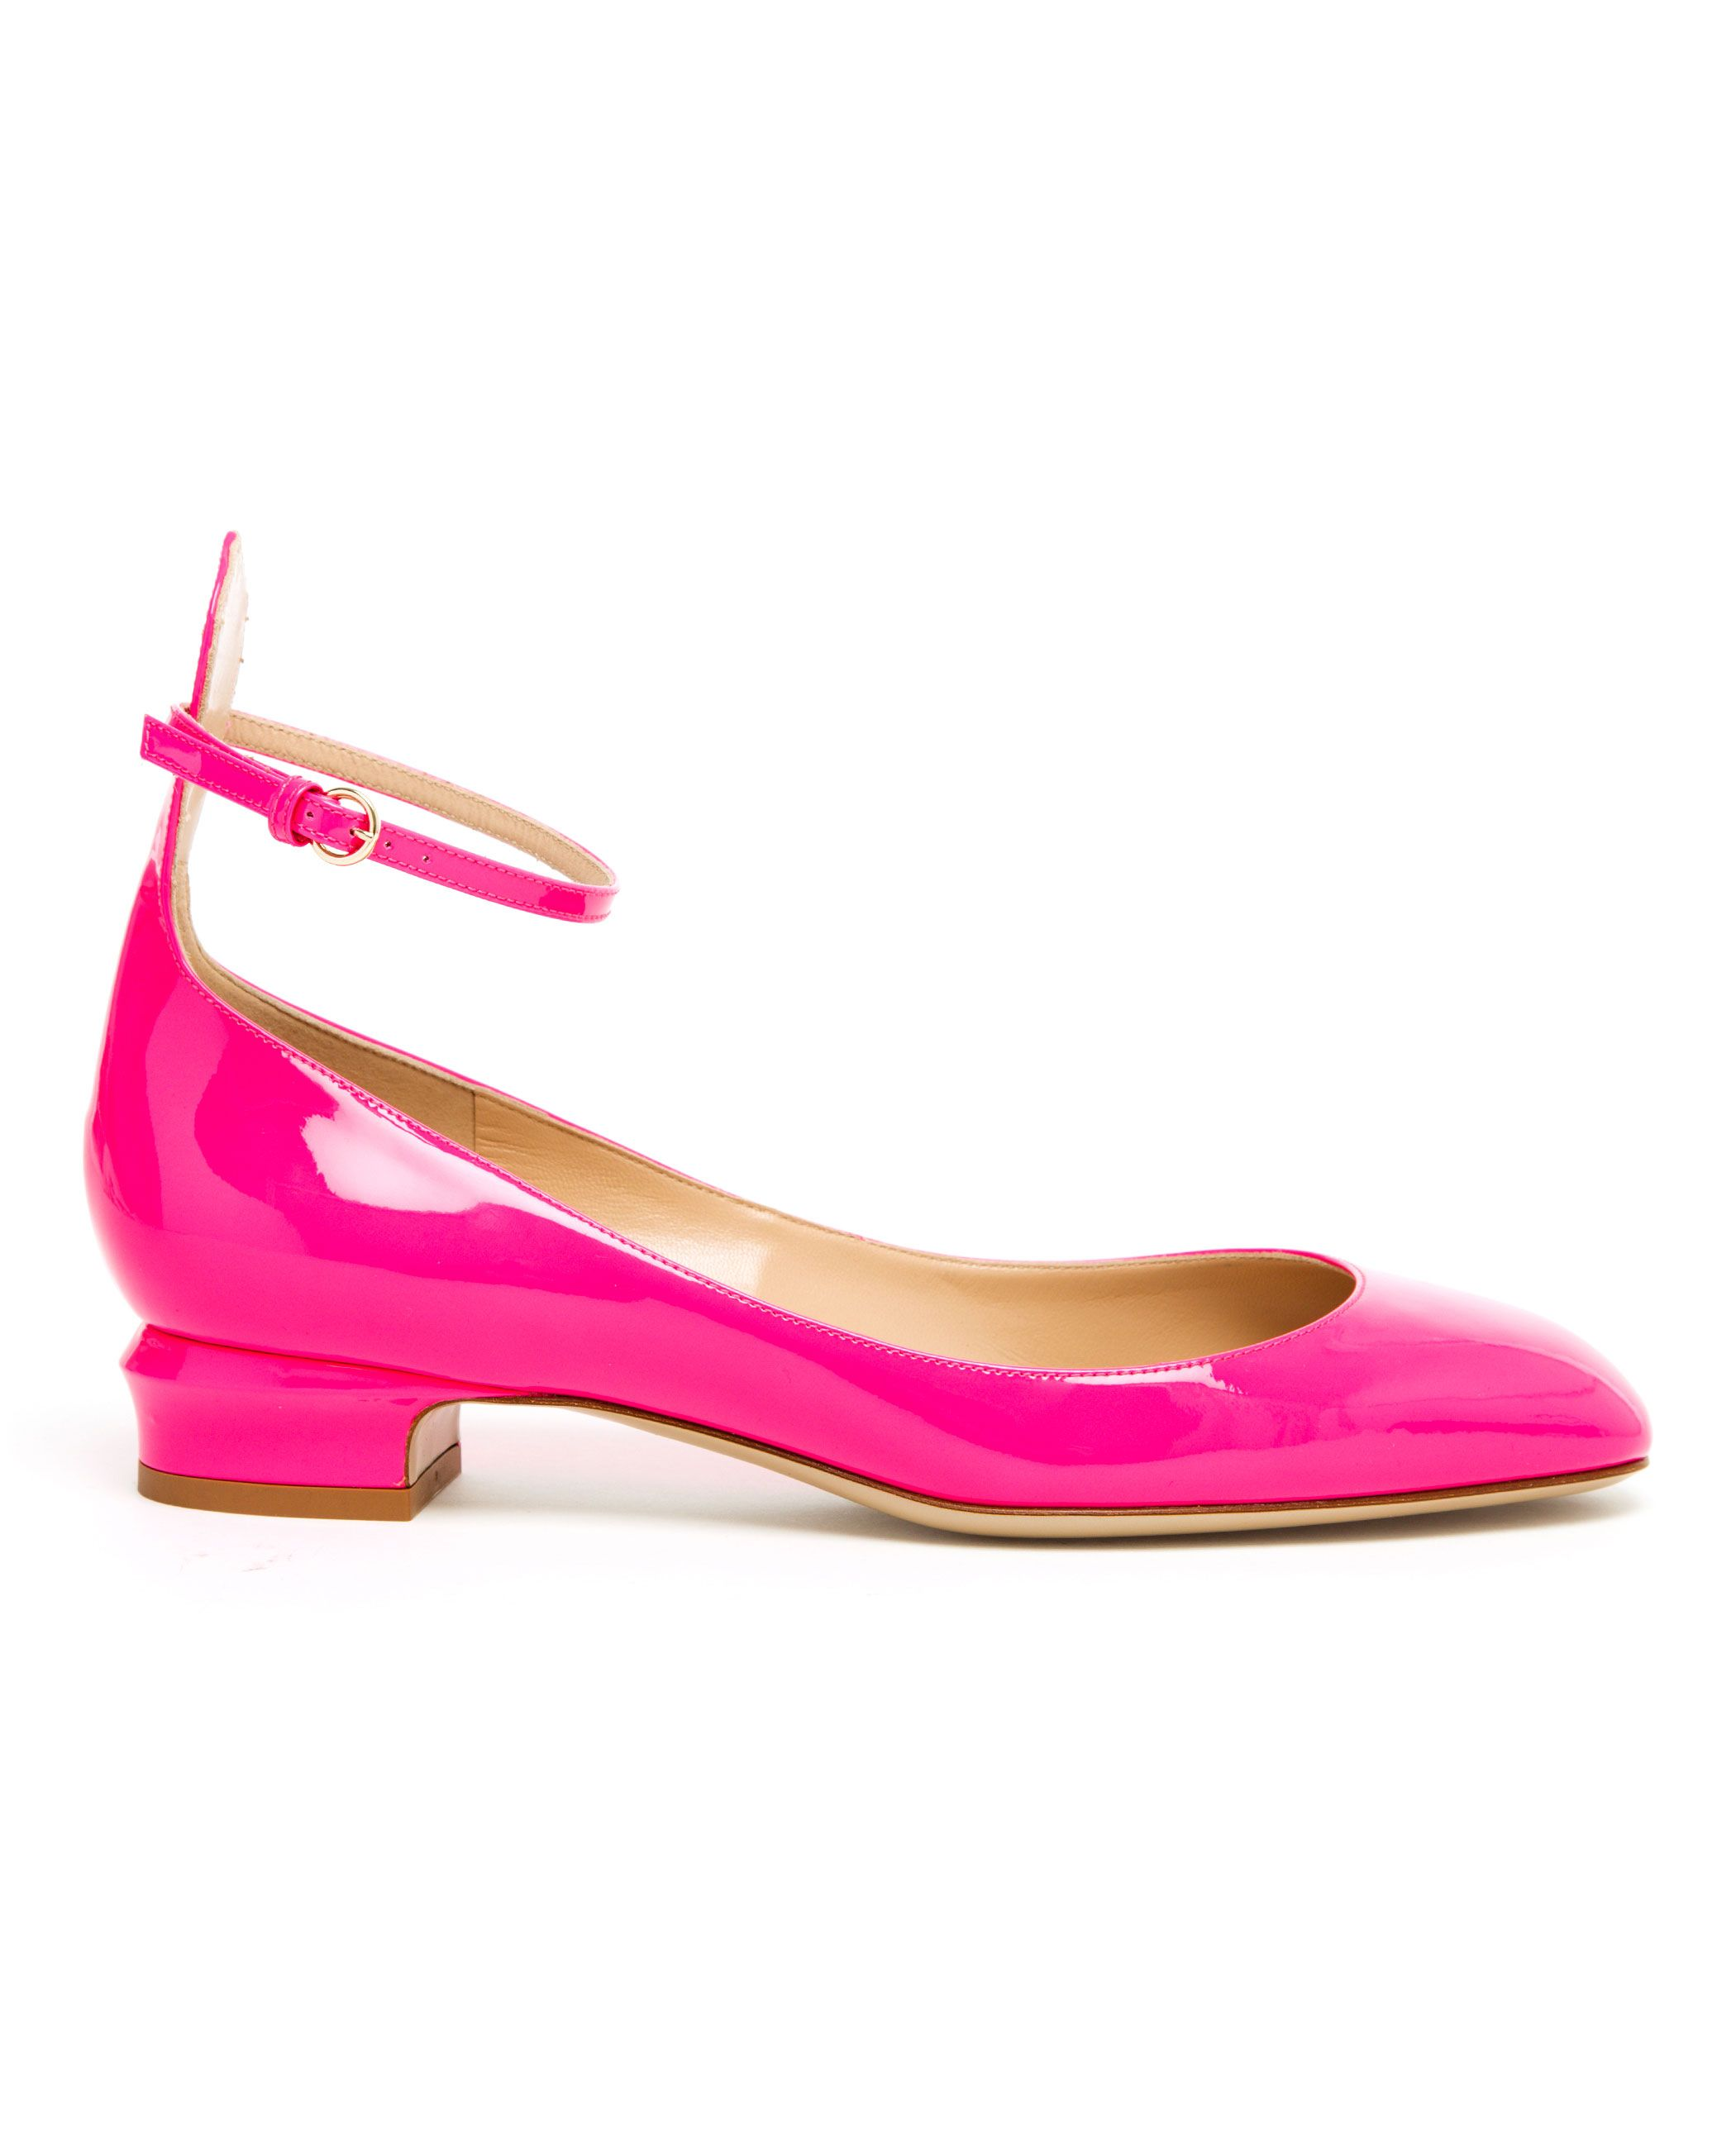 410605cfc27e Valentino Tango Patent Leather Mary Jane Pumps in Pink